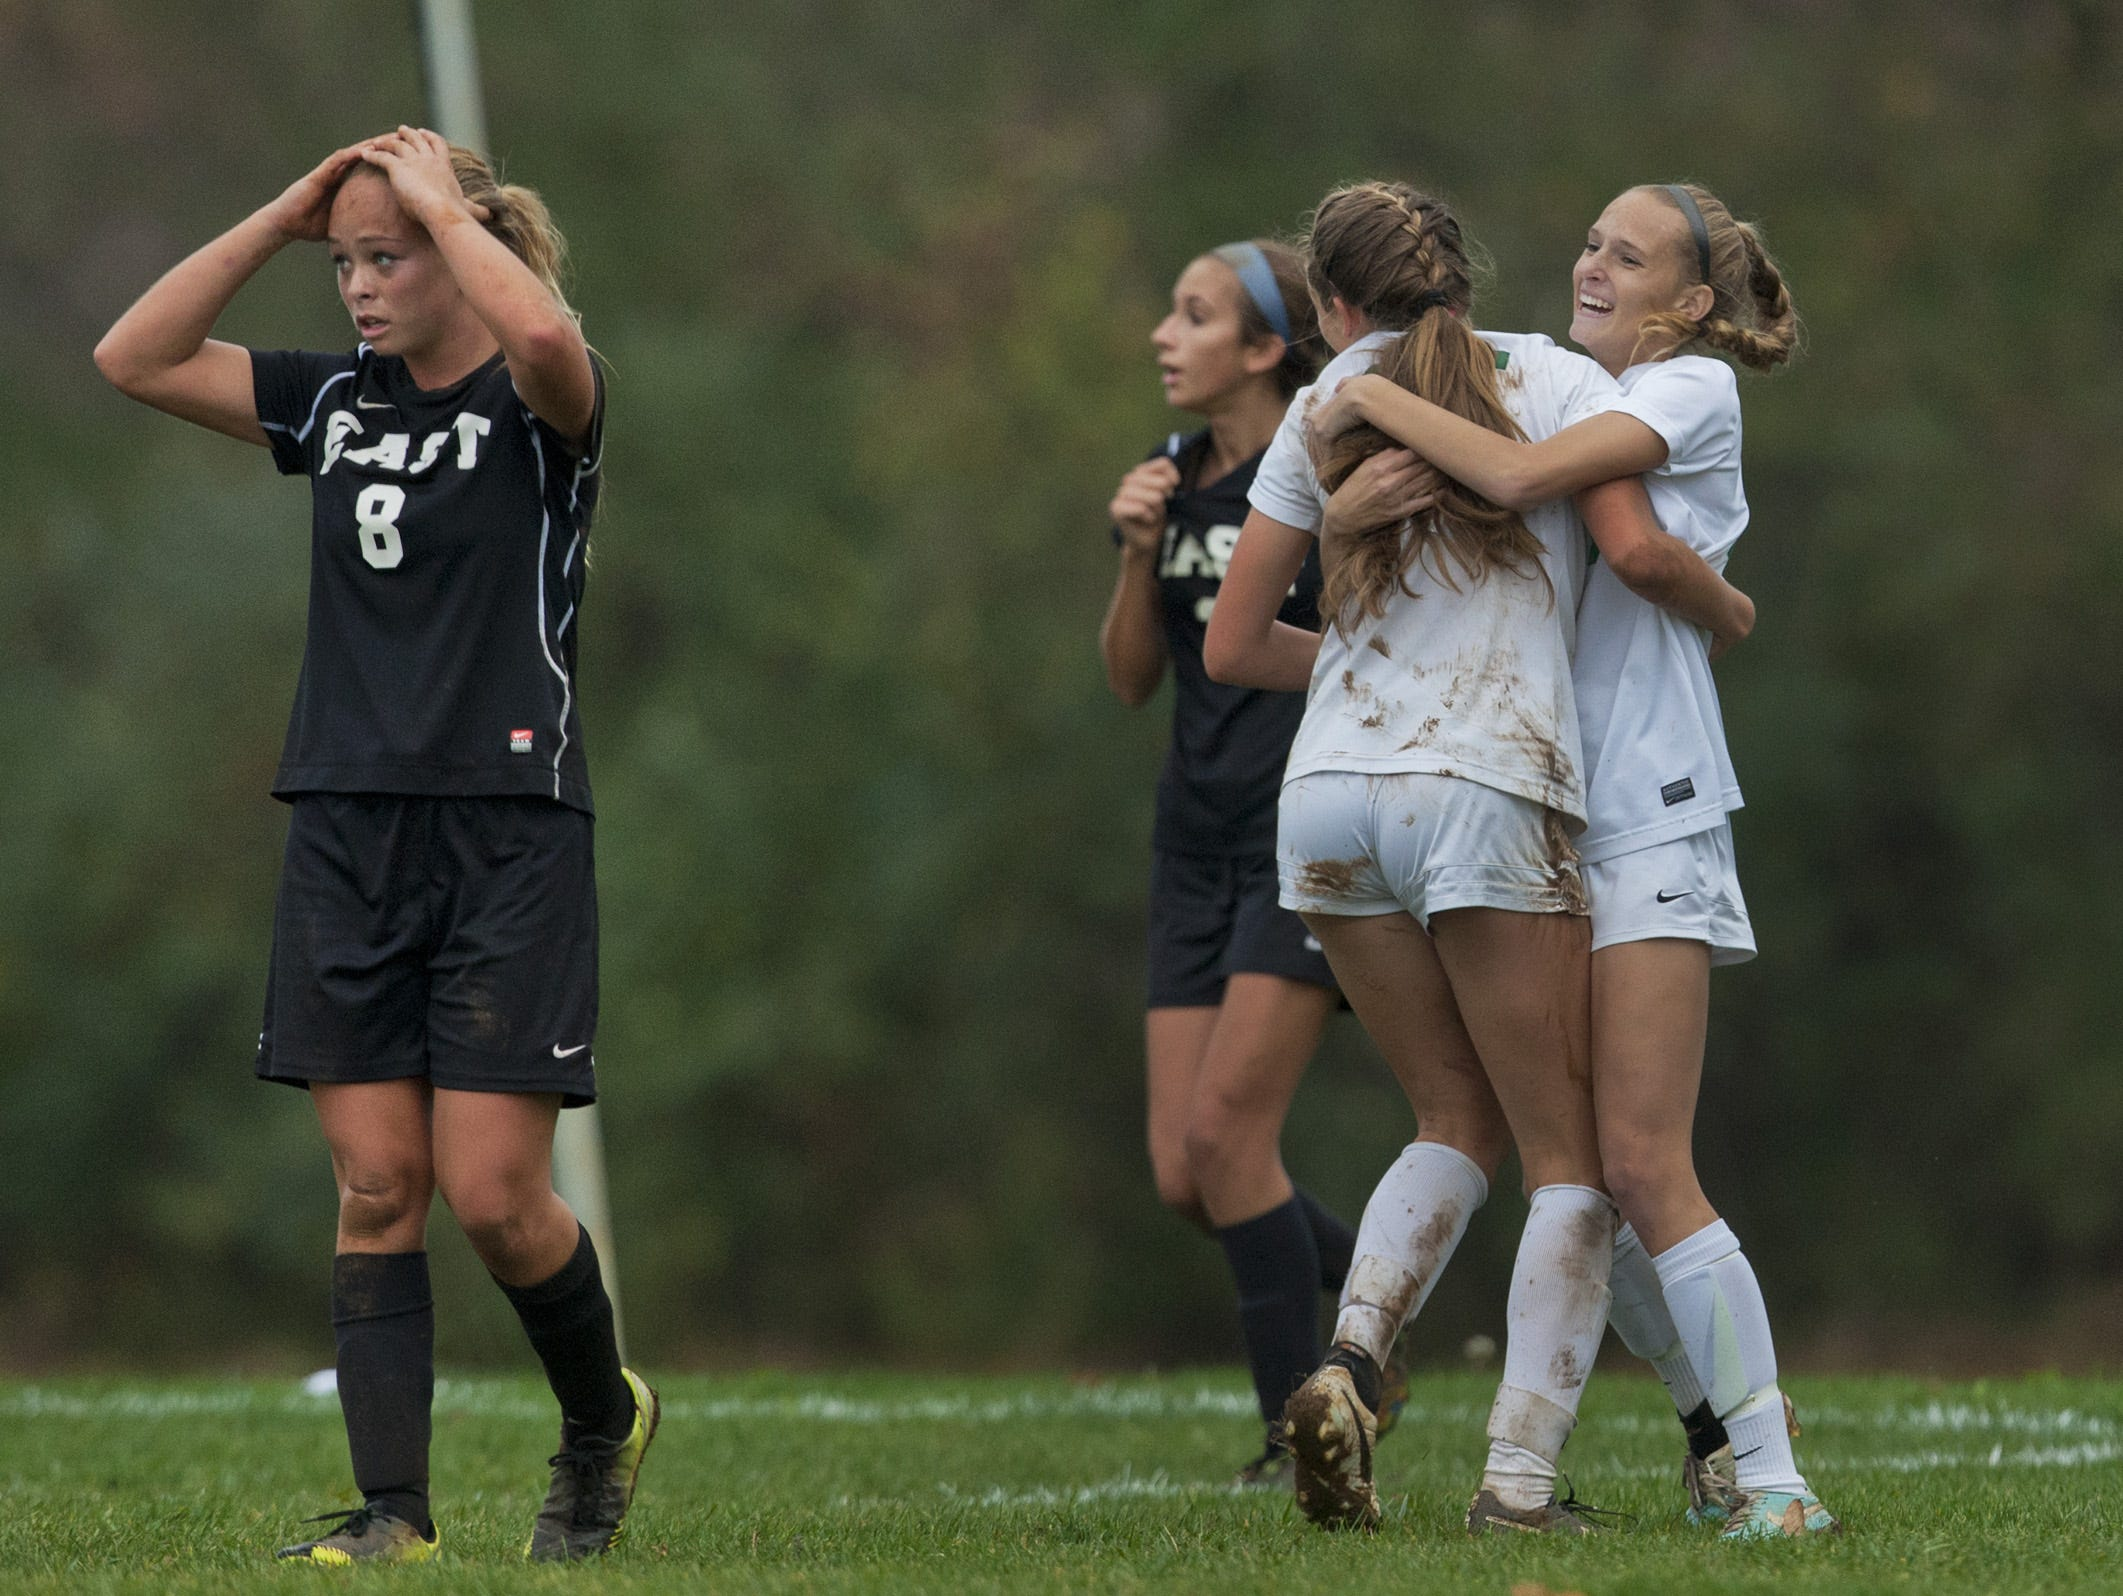 Toms River East's Kristen Lister looks shocked as Nicole Loehle (back to camera) celebrates her goal, the third for Colts Neck to take the lead 3-0 at that point. Colts Neck defeats Toms River East in NJSIAA girls soccer Central Group III final in Colts Neck on November 12, 2015